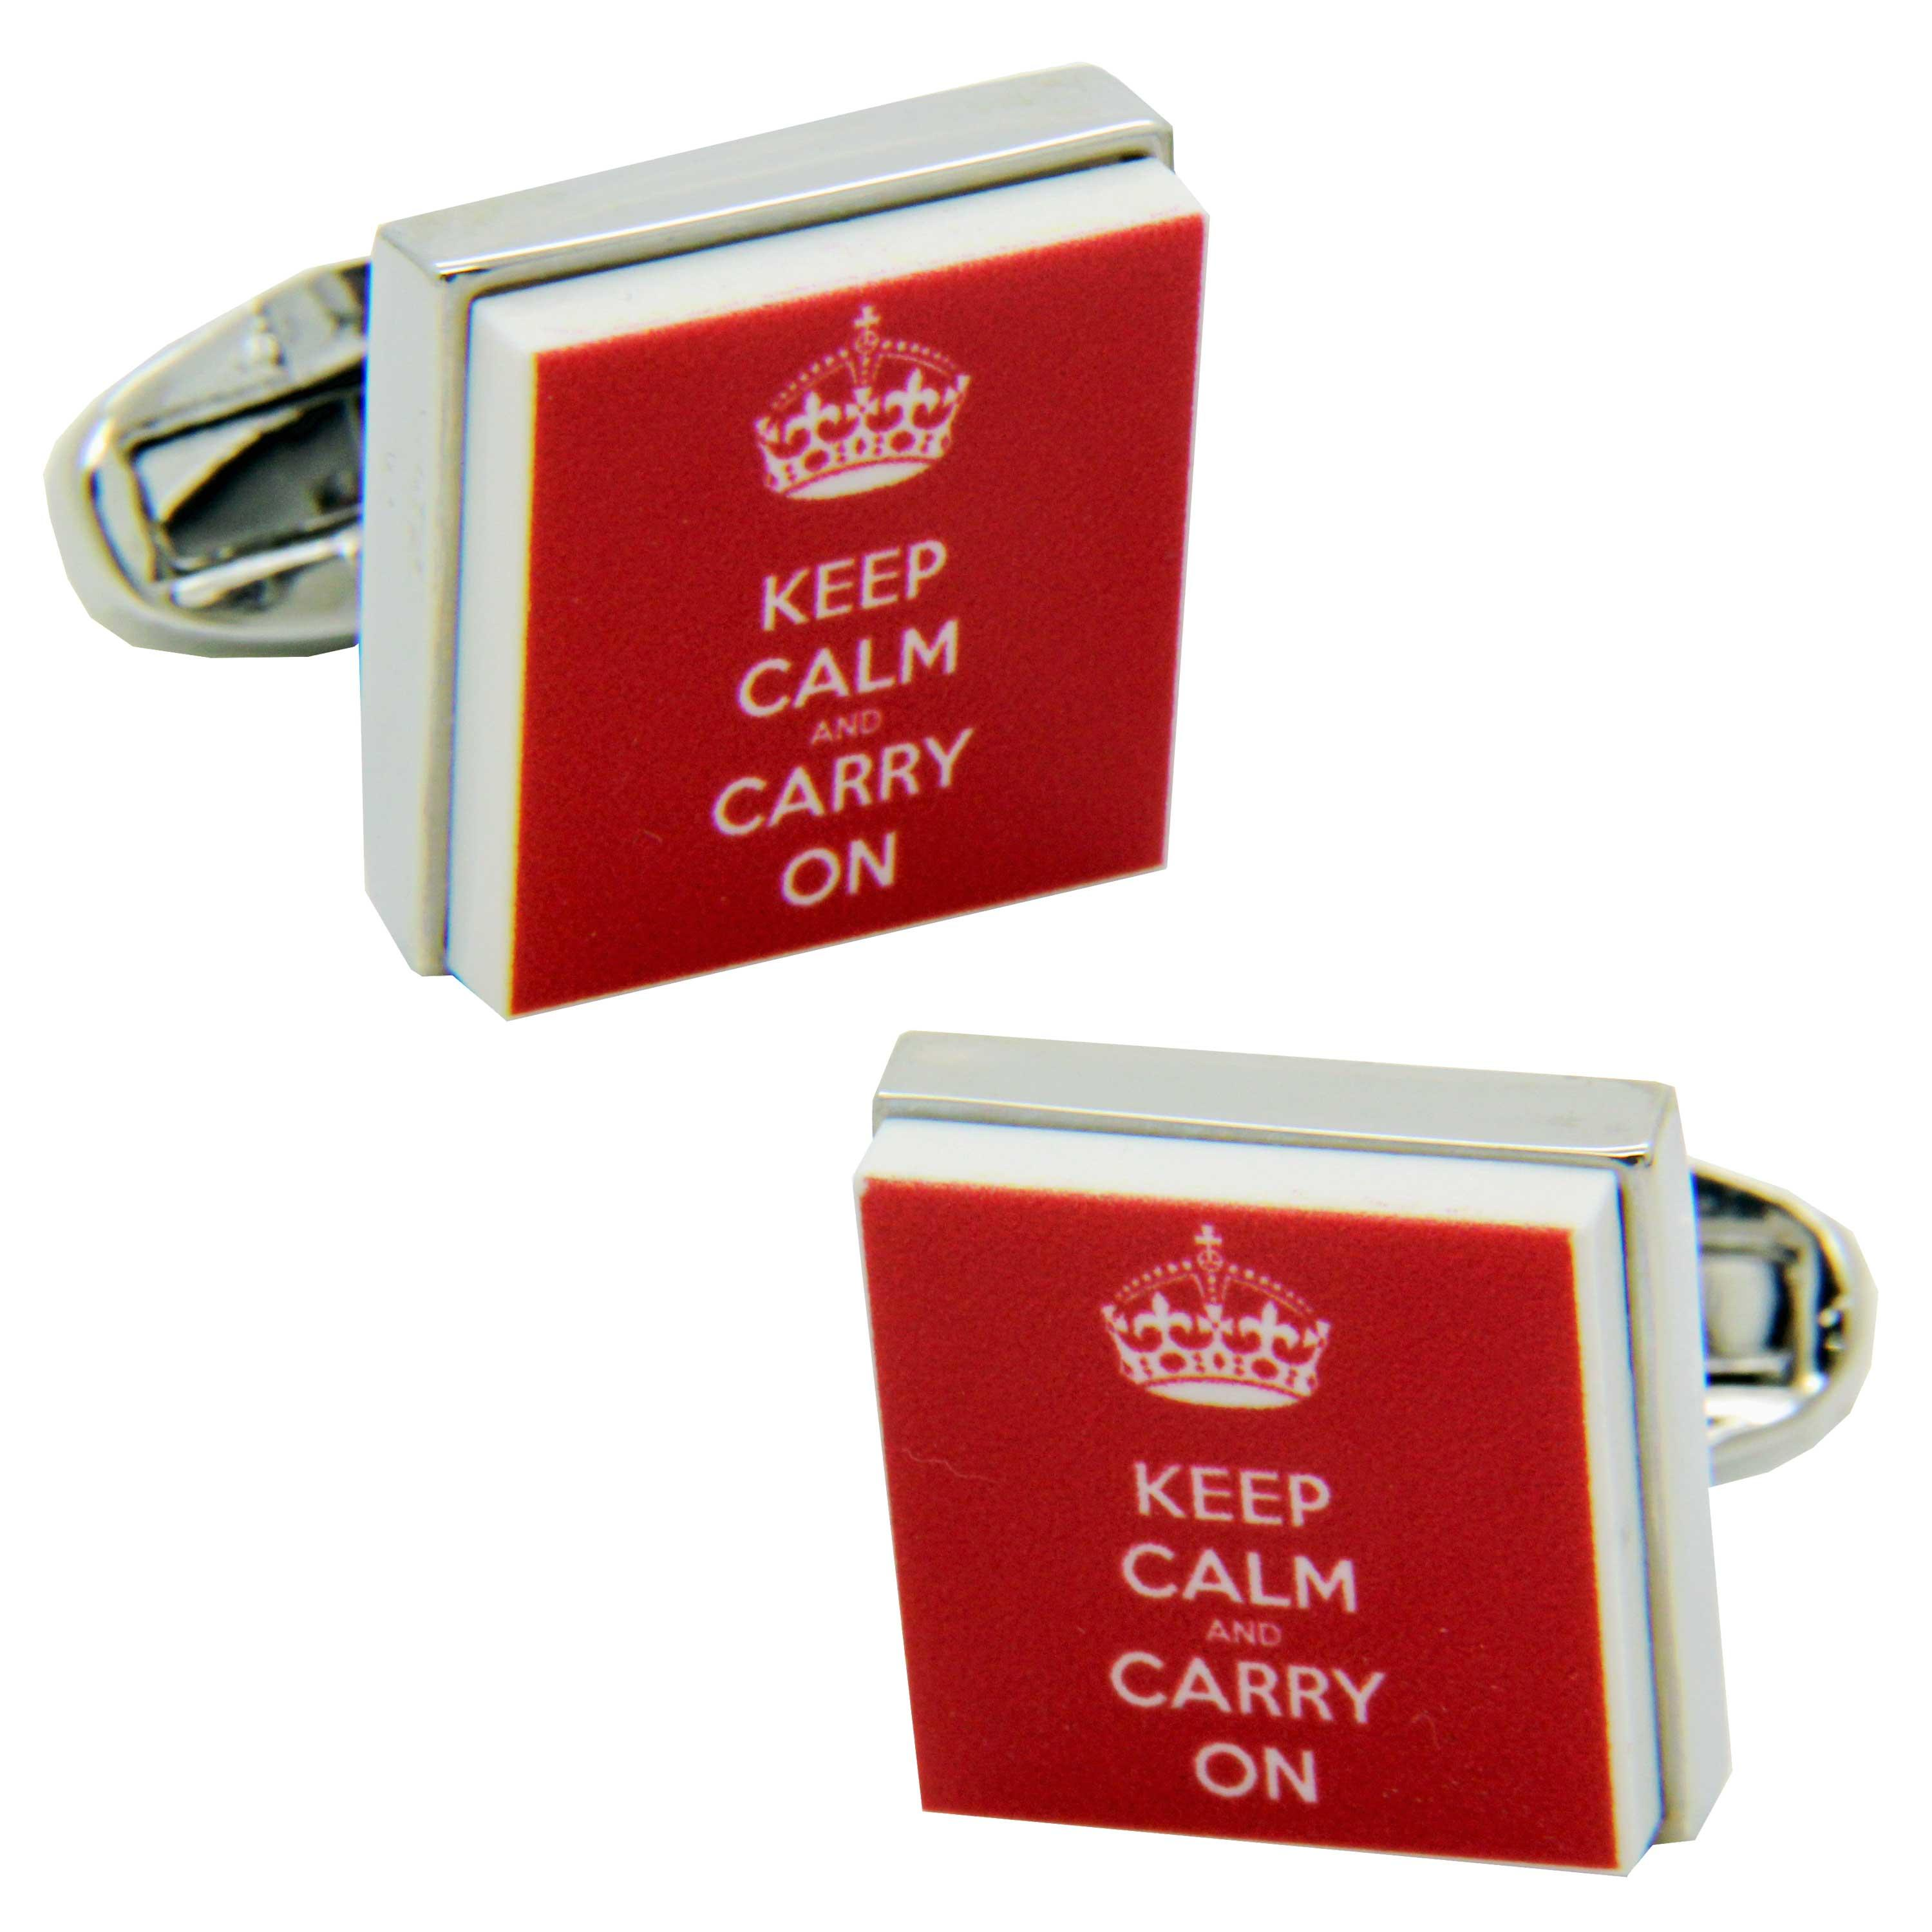 Keep Calm & Carry On Cufflinks from Cuffs & Co